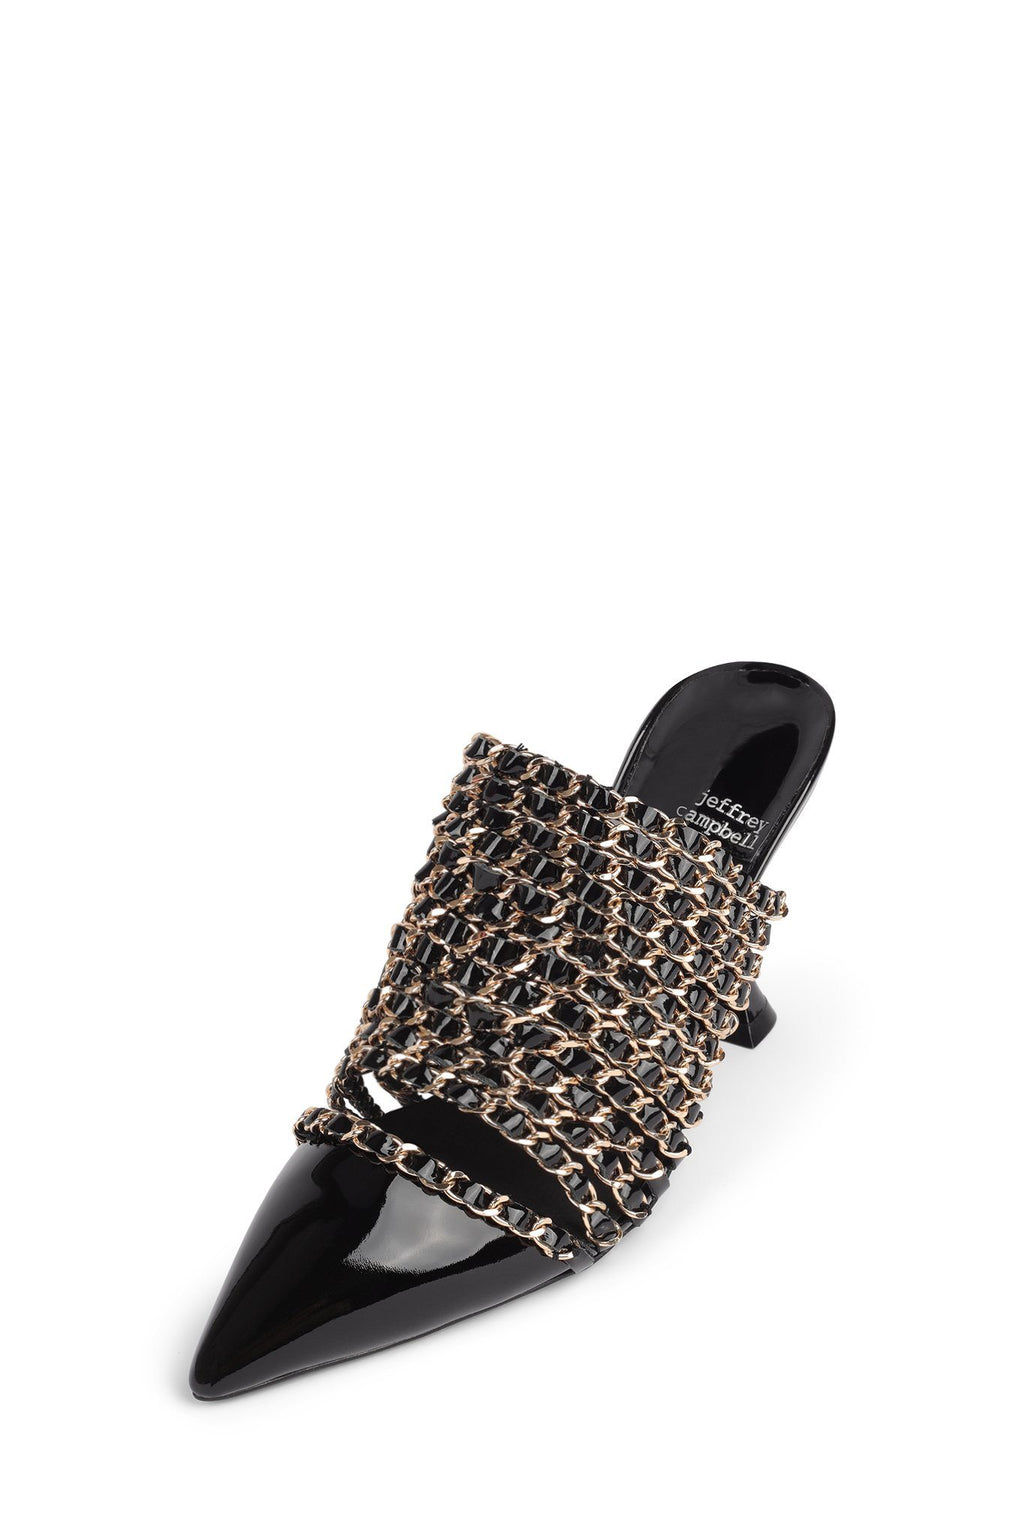 DISORDER Heeled Mule Jeffrey Campbell